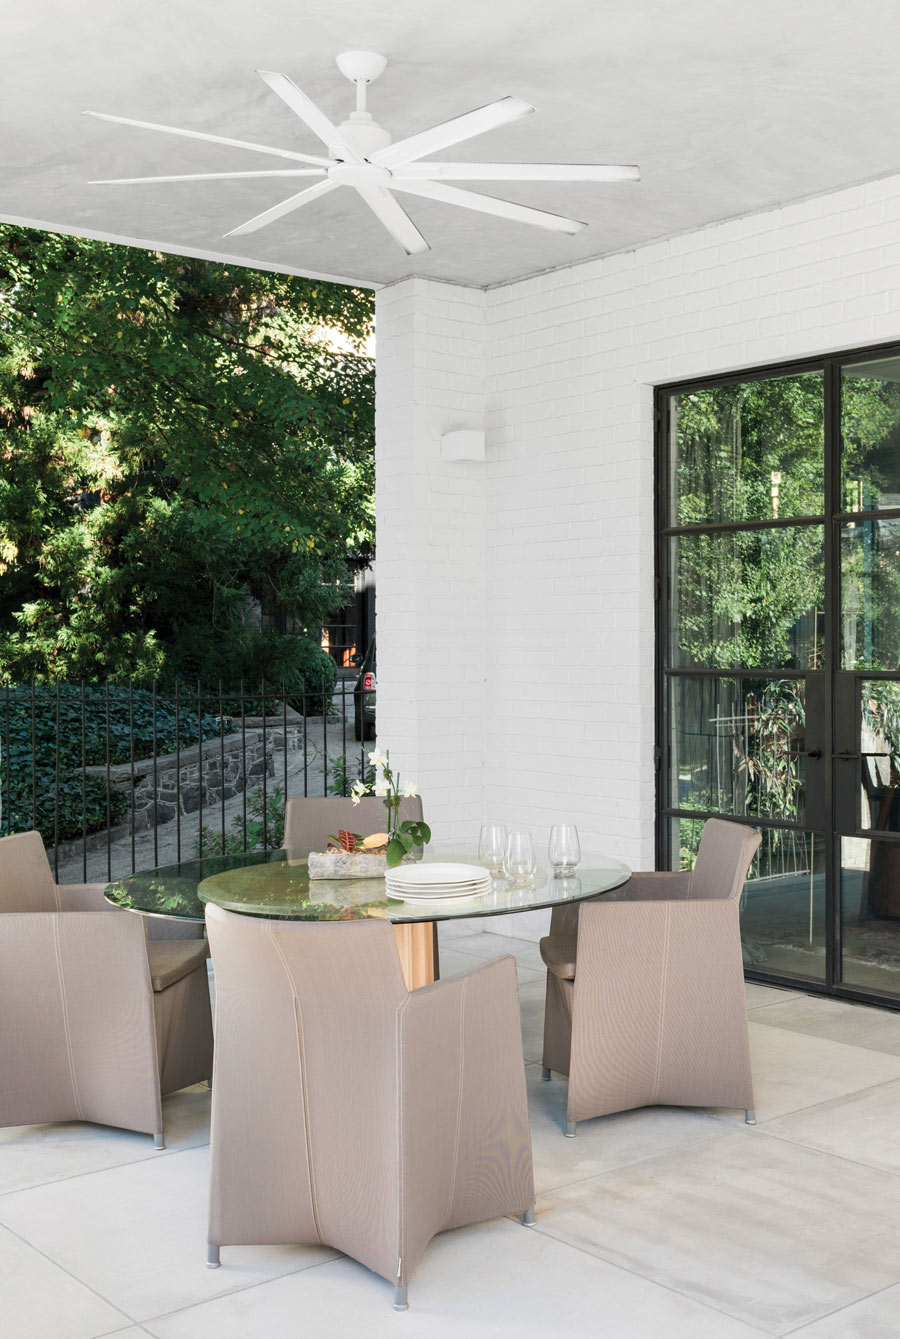 Historic references and a modern sensibility influence this Midtown home in equal measure